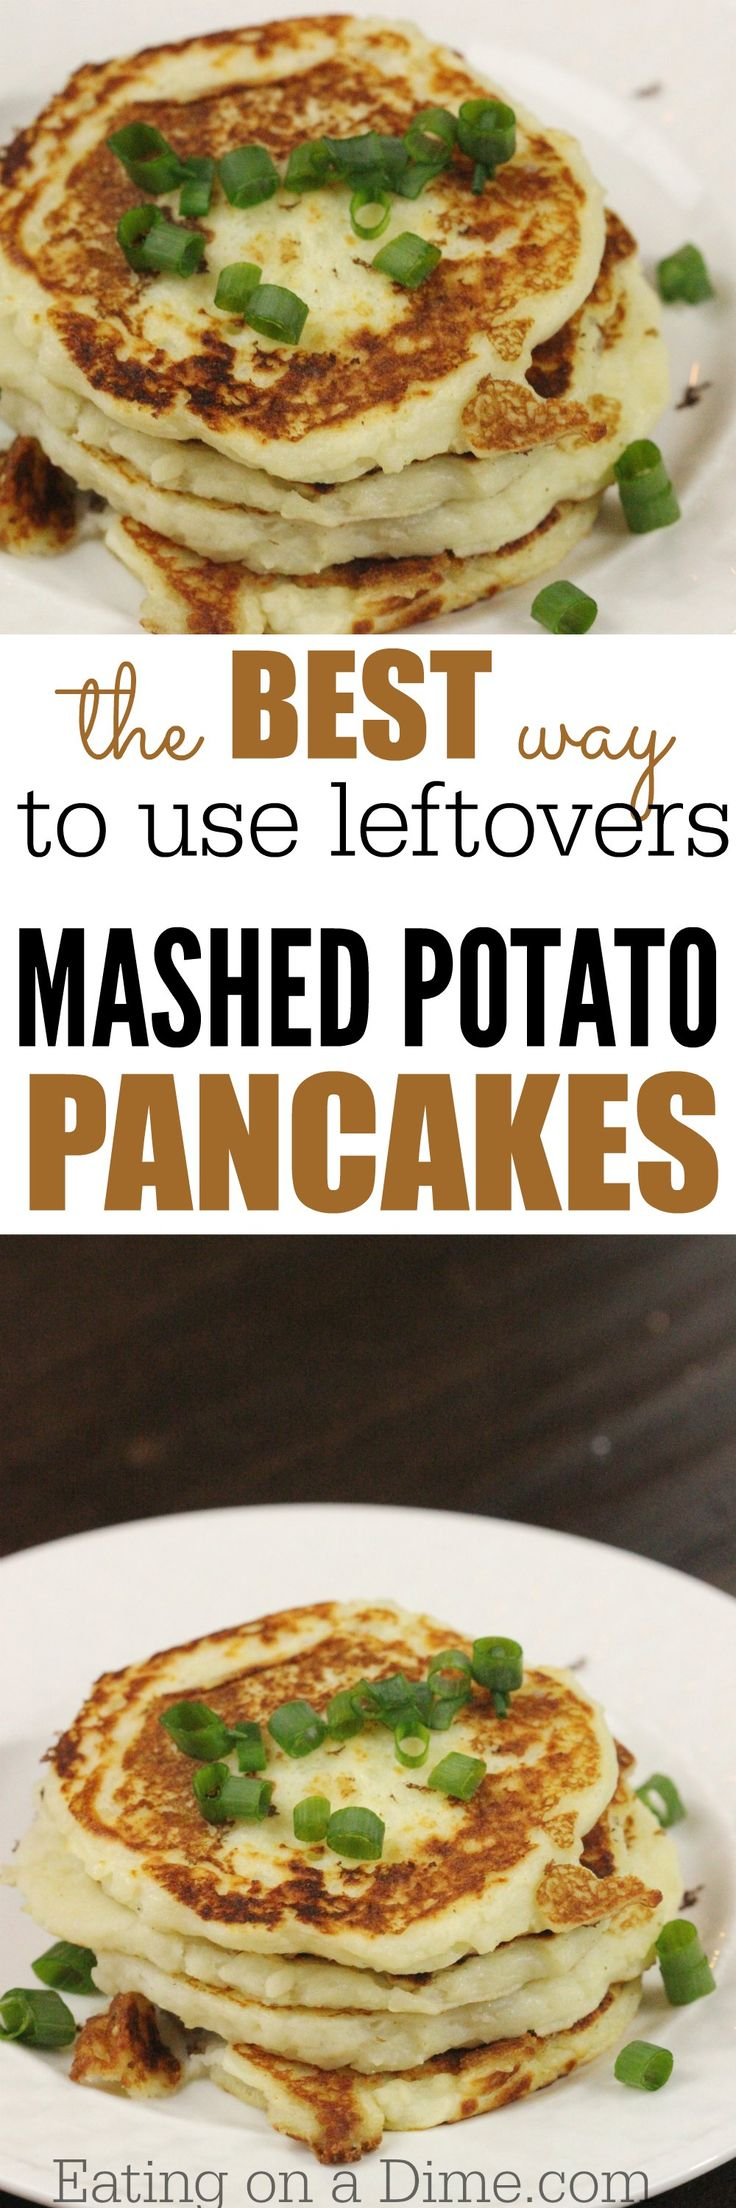 Leftovers Mashed Potato Pancakes recipe.  The entire family loved them! In fact, the entire family were upset that we didn't have more. From now on I think I'm going to make too many mashed potatoes on purpose just so I make this yummy mashed potato cakes recipe.